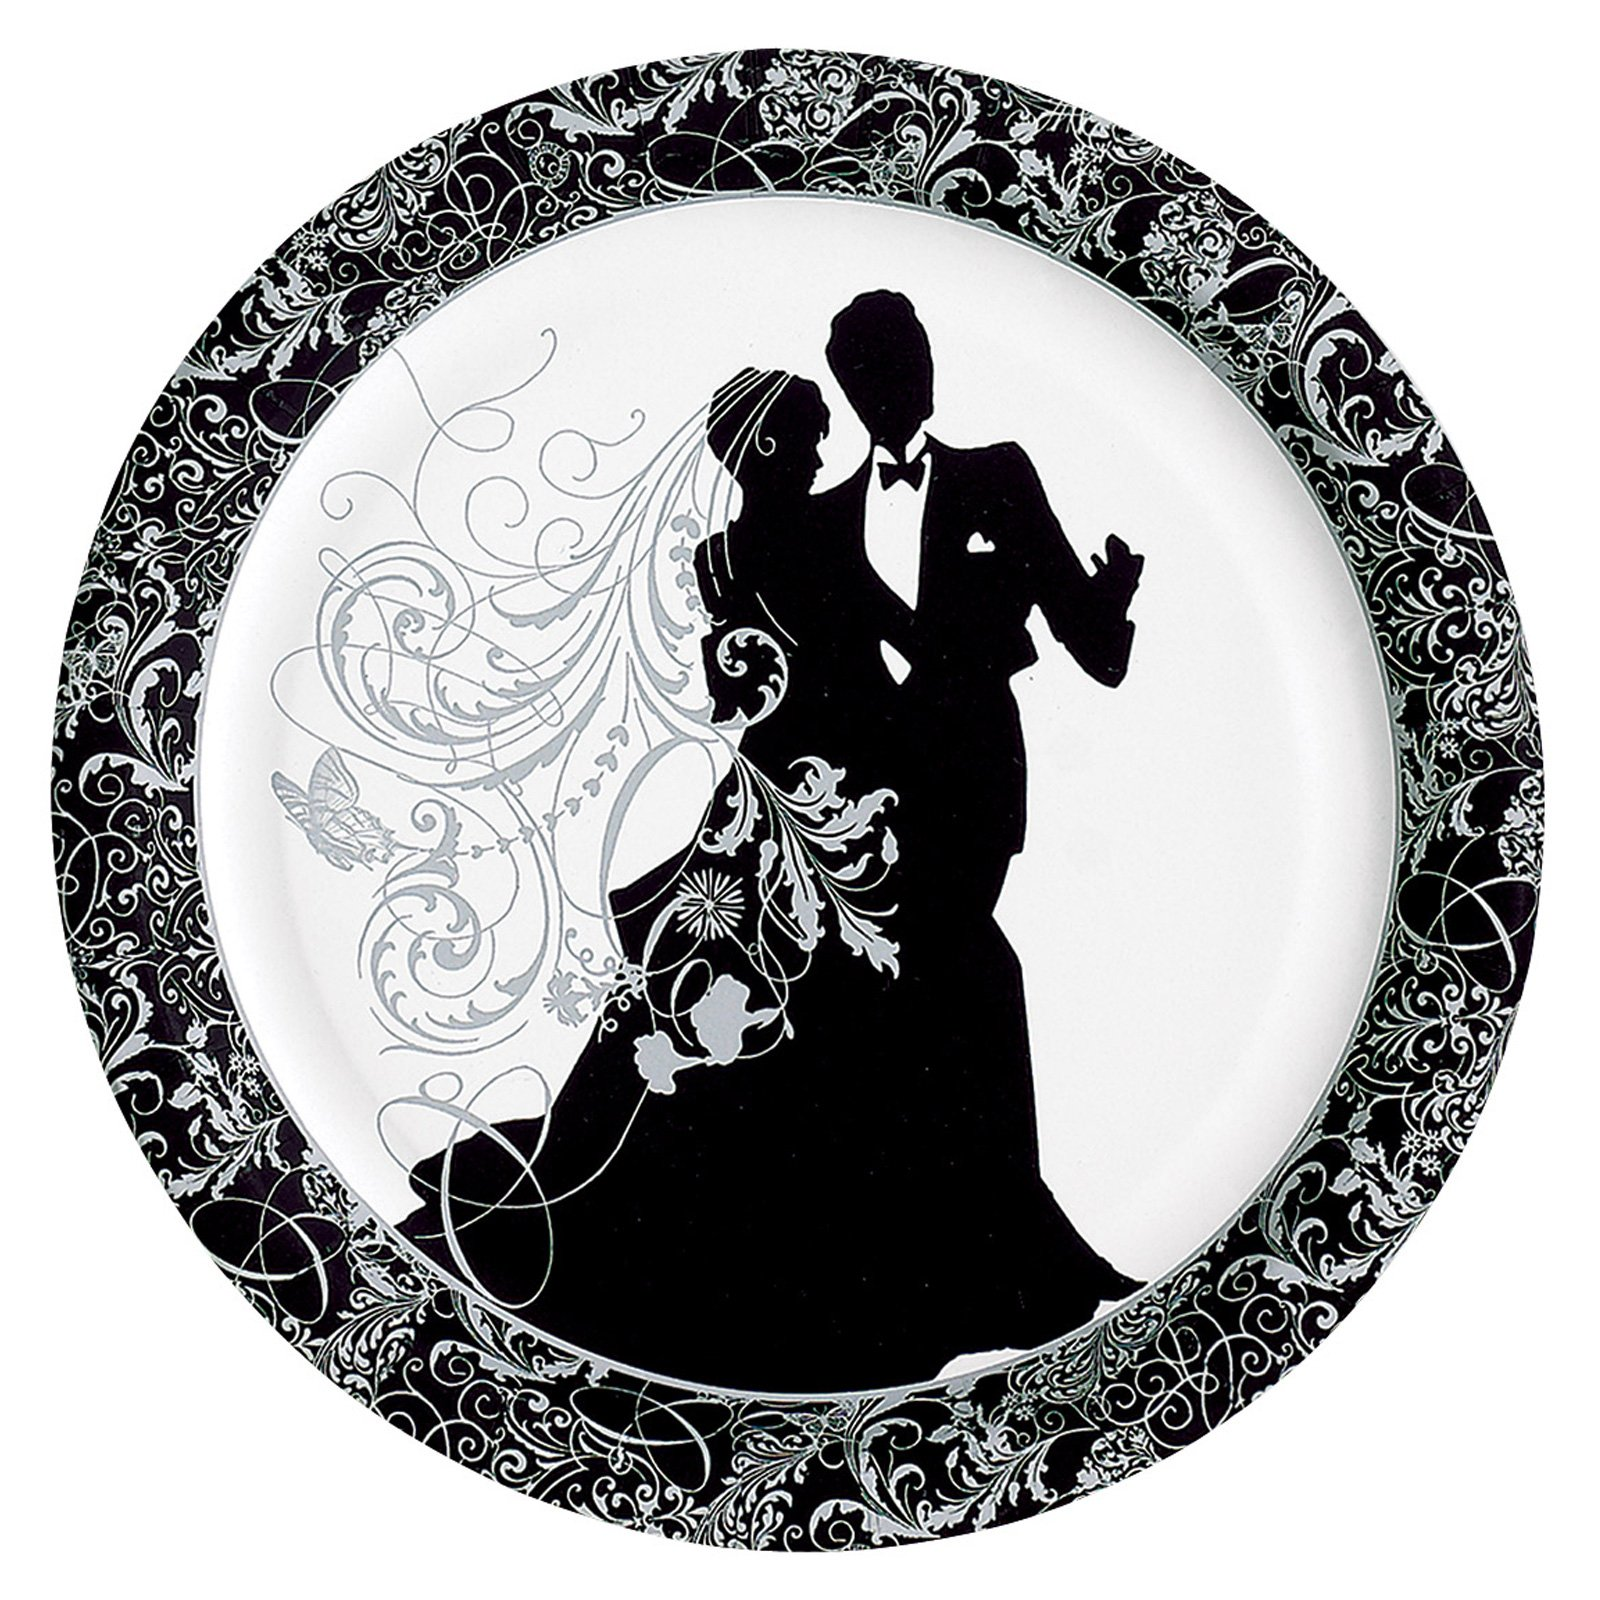 Silhouette Dinner Plates (8 count)